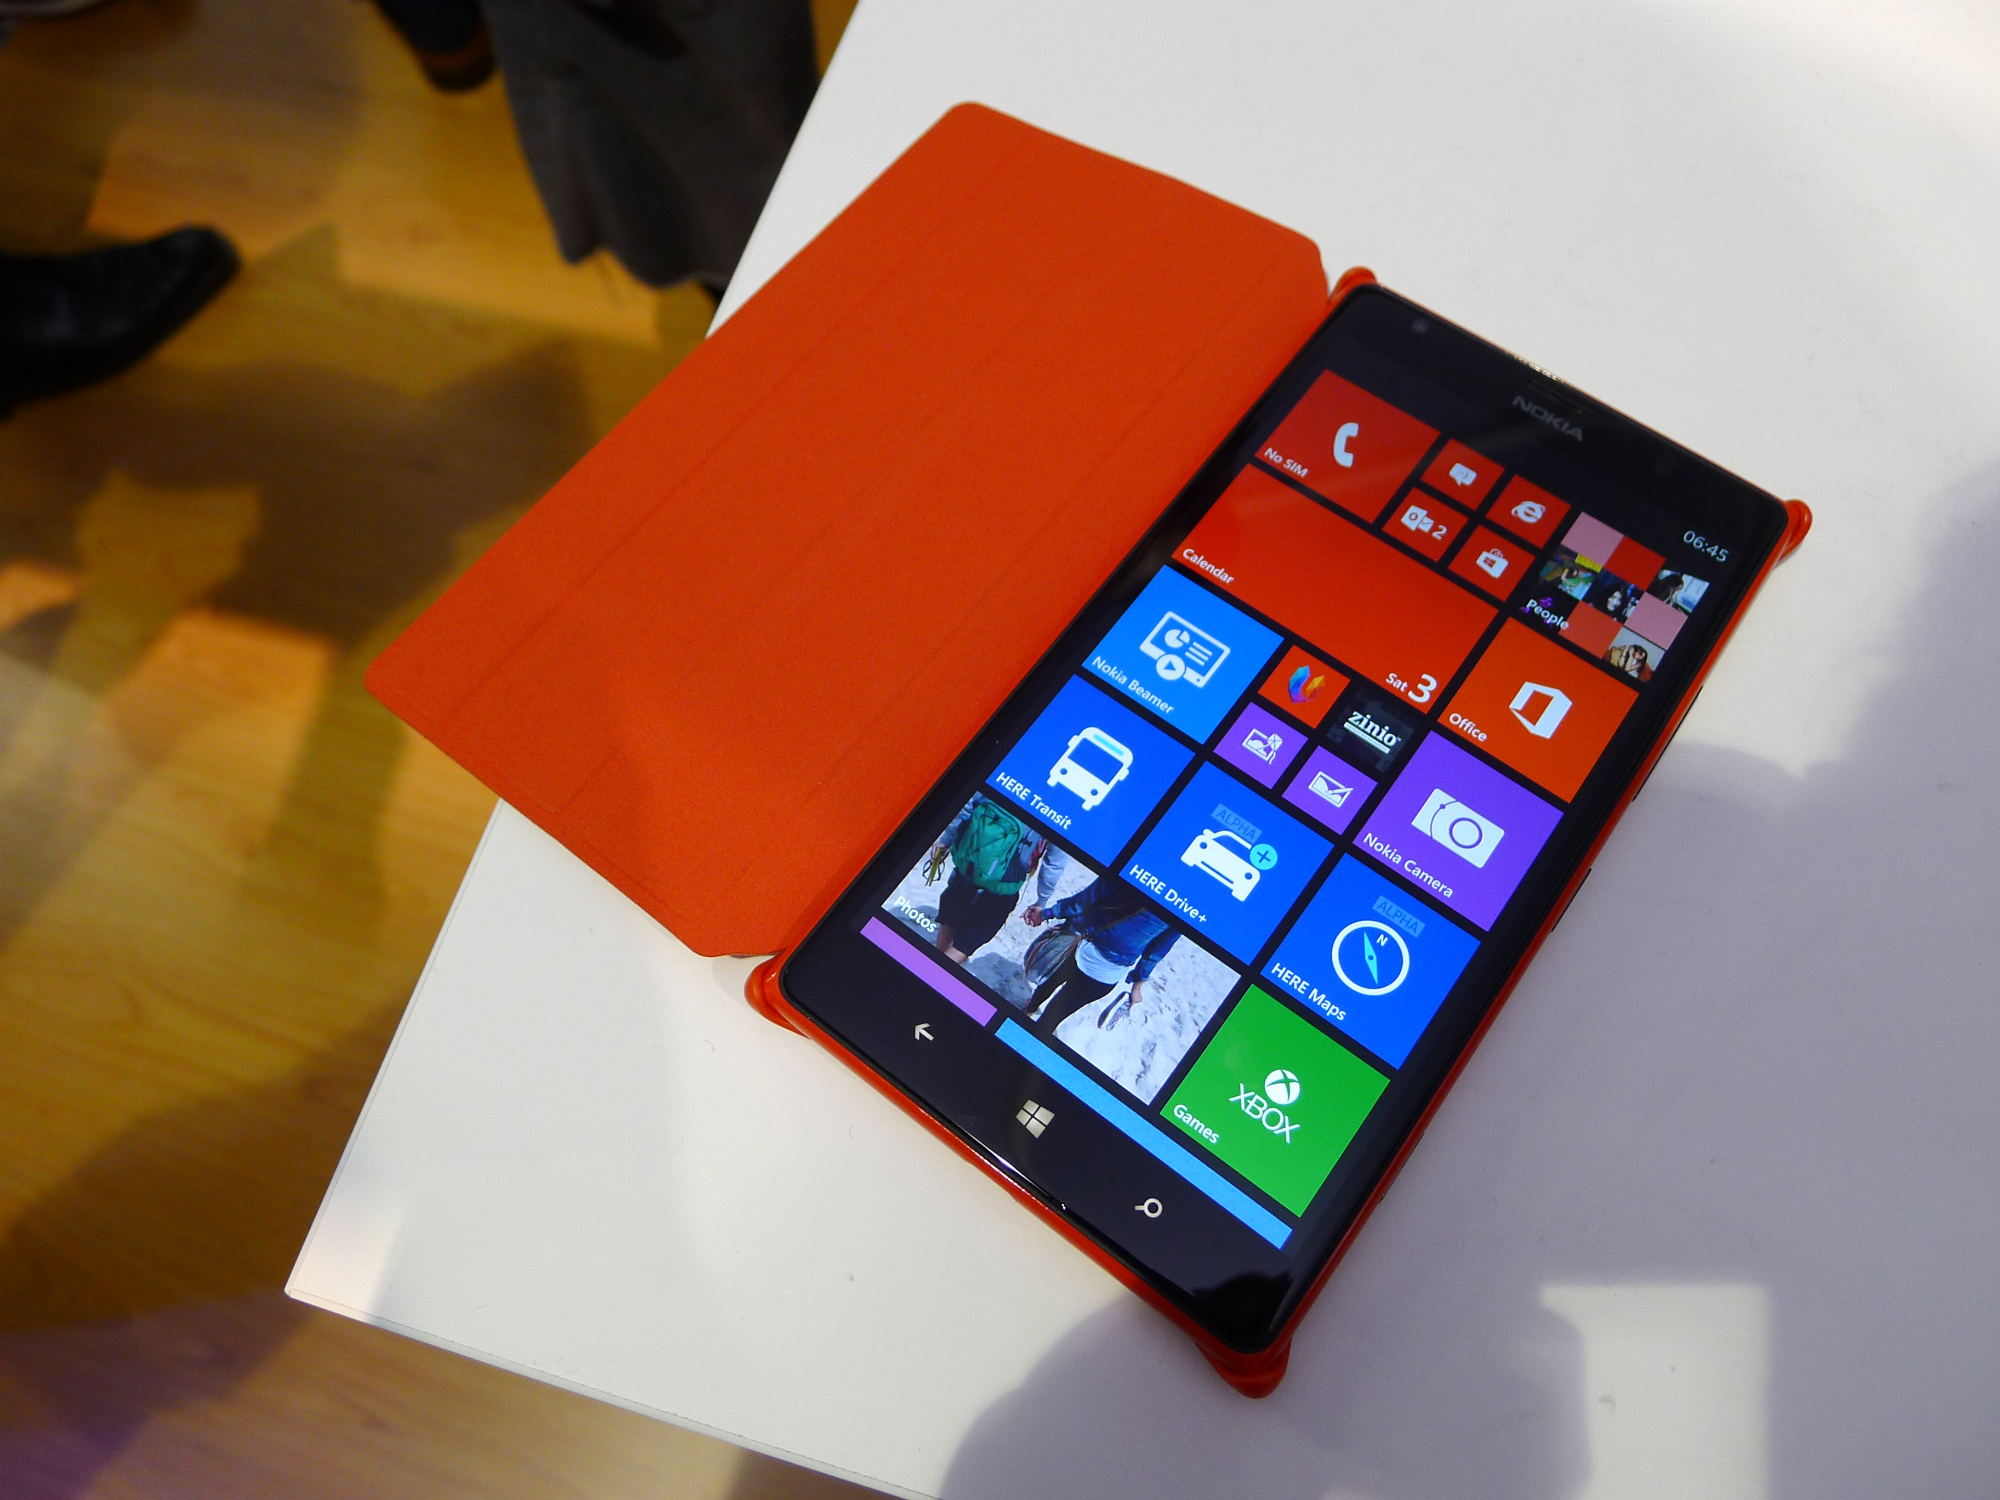 1520resize Nokia Lumia 1520 hands on: This colossal 6, 1080p quad core smartphone is sizing up the Galaxy Note 3